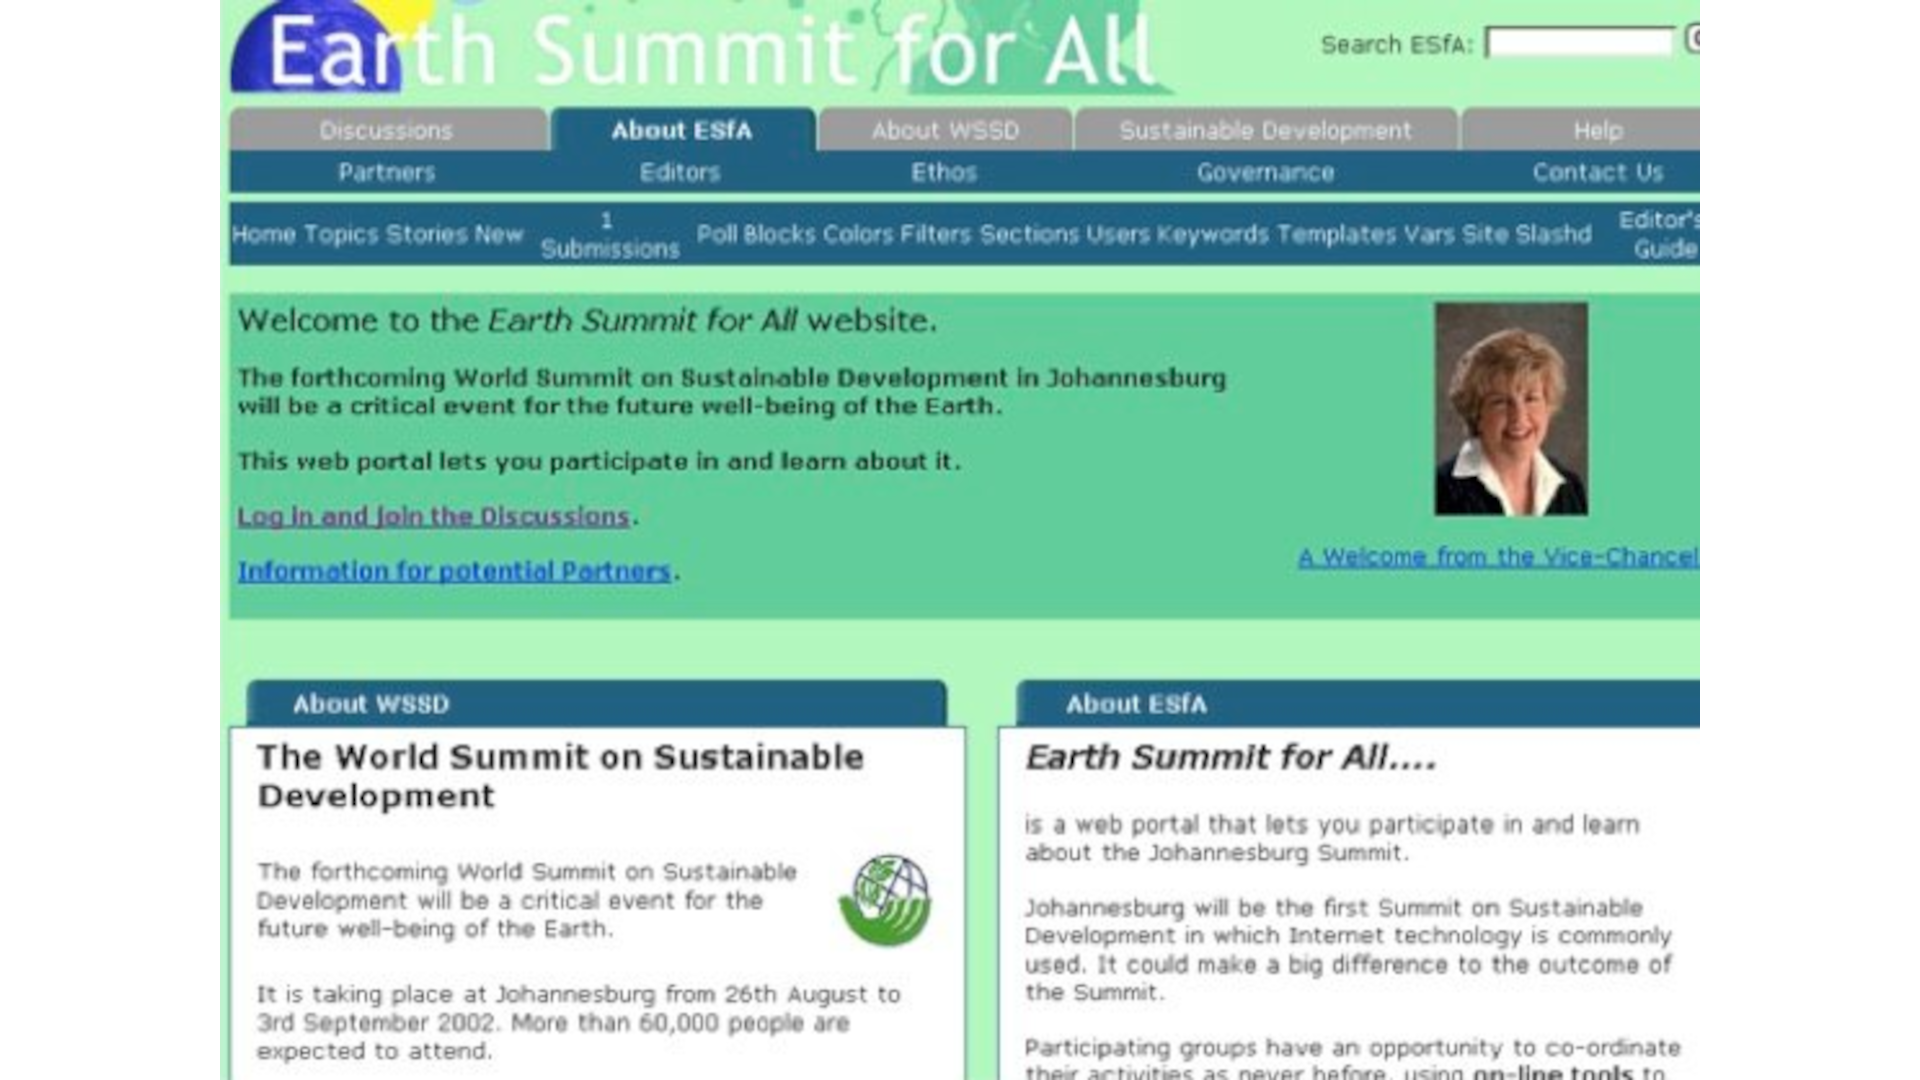 Screenshot of Earth Summit for All website